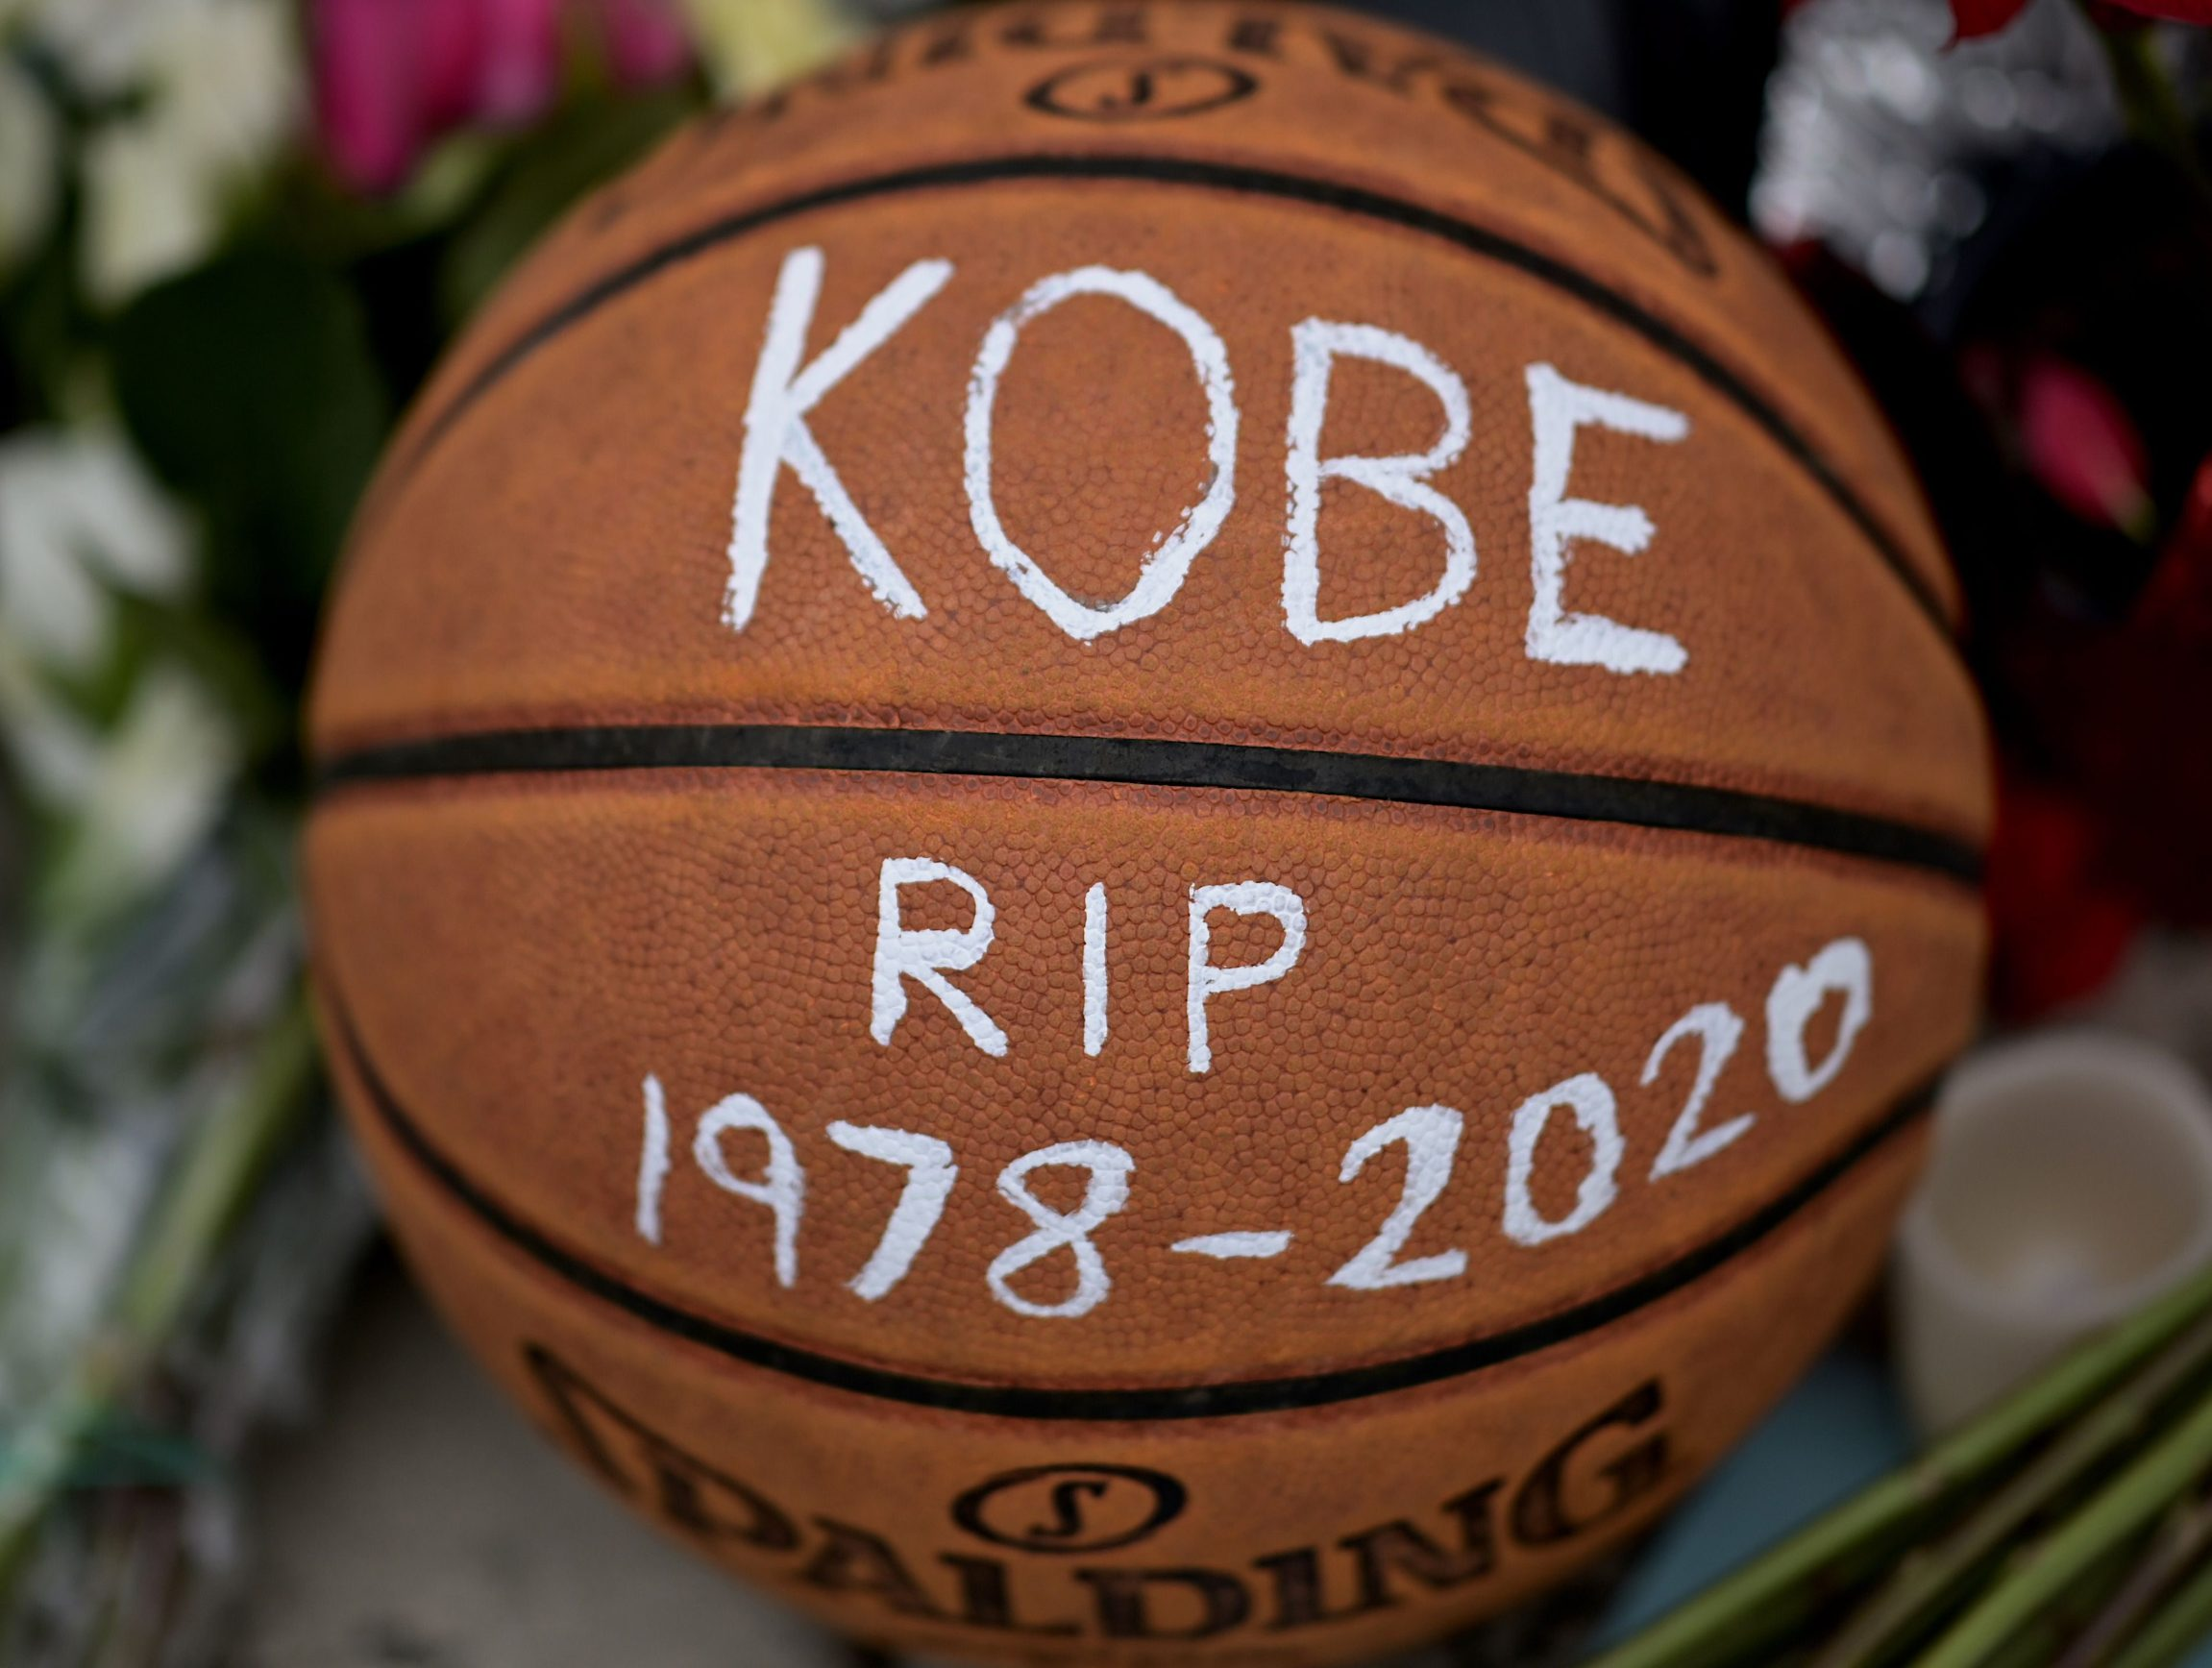 Basketballs are seen outside Bryant Gymnasium at Lower Merion High School, where basketball legend Kobe Bryant formally attended school, after his passing, on January 27, 2020 in Philadelphia, Pennsylvania. - Nine people were killed in the helicopter crash which claimed the life of NBA star Kobe Bryant and his 13 year old daughter, Los Angeles officials confirmed on Sunday. Los Angeles County Sheriff Alex Villanueva said eight passengers and the pilot of the aircraft died in the accident. The helicopter crashed in foggy weather in the Los Angeles suburb of Calabasas. Authorities said firefighters received a call shortly at 9:47 am about the crash, which caused a brush fire on a hillside. (Photo by Johannes EISELE / AFP)